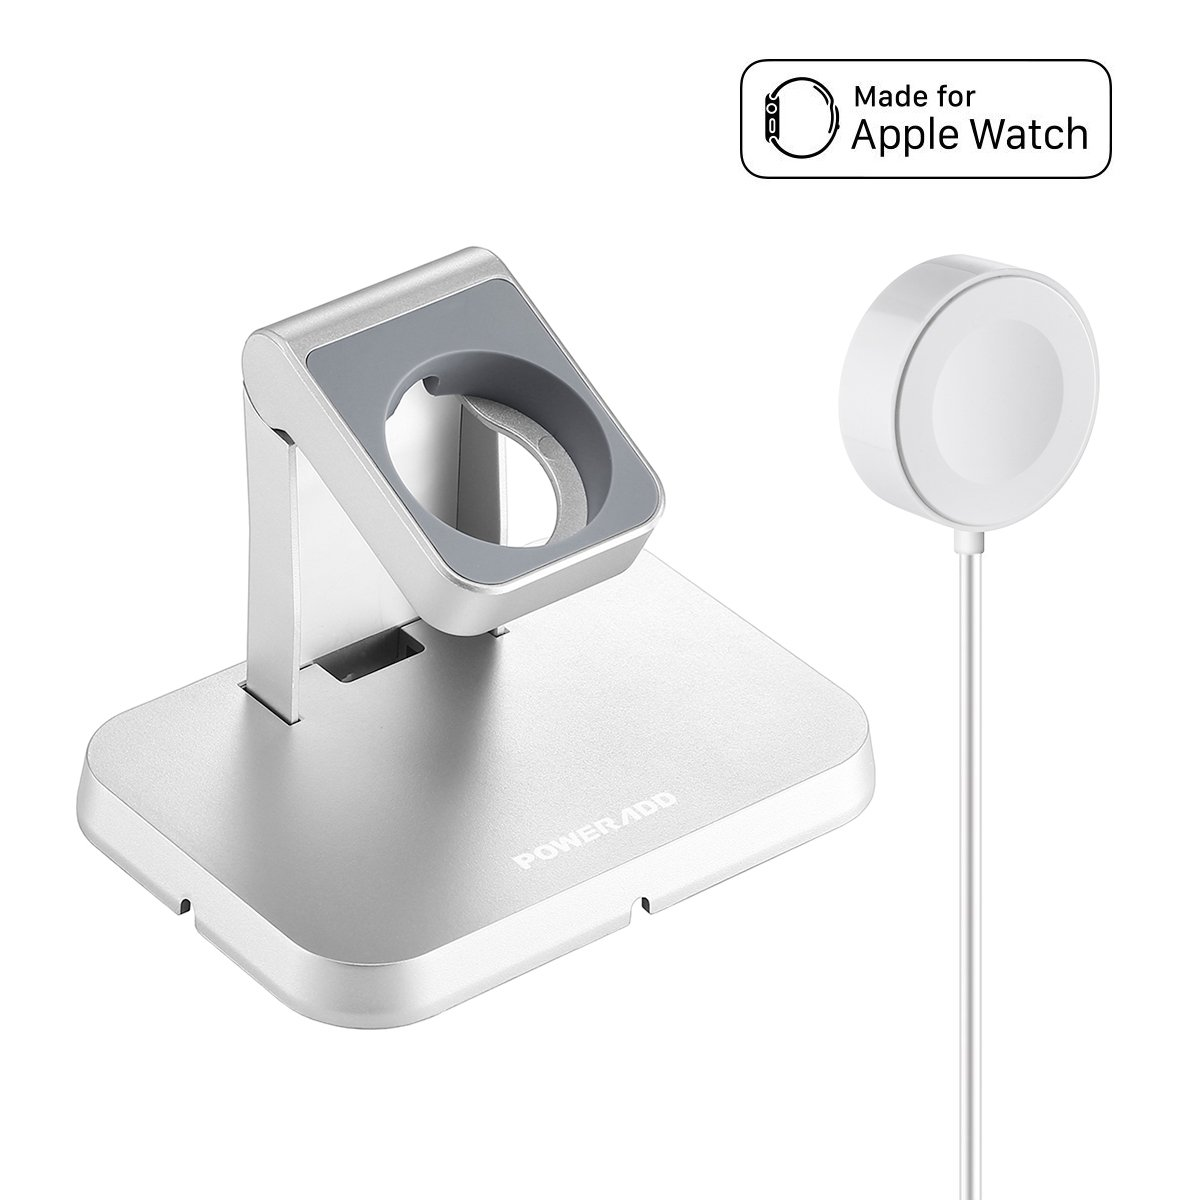 POWERADD [ Apple MFi Certified Apple Watch Charger, Magnetic Charging Dock and Stand, Apple Watch/iWatch 38mm & 42mm with Detachable Magnetic Charging Cable 3.3ft, Apple Watch Series 1/2 / 3/4